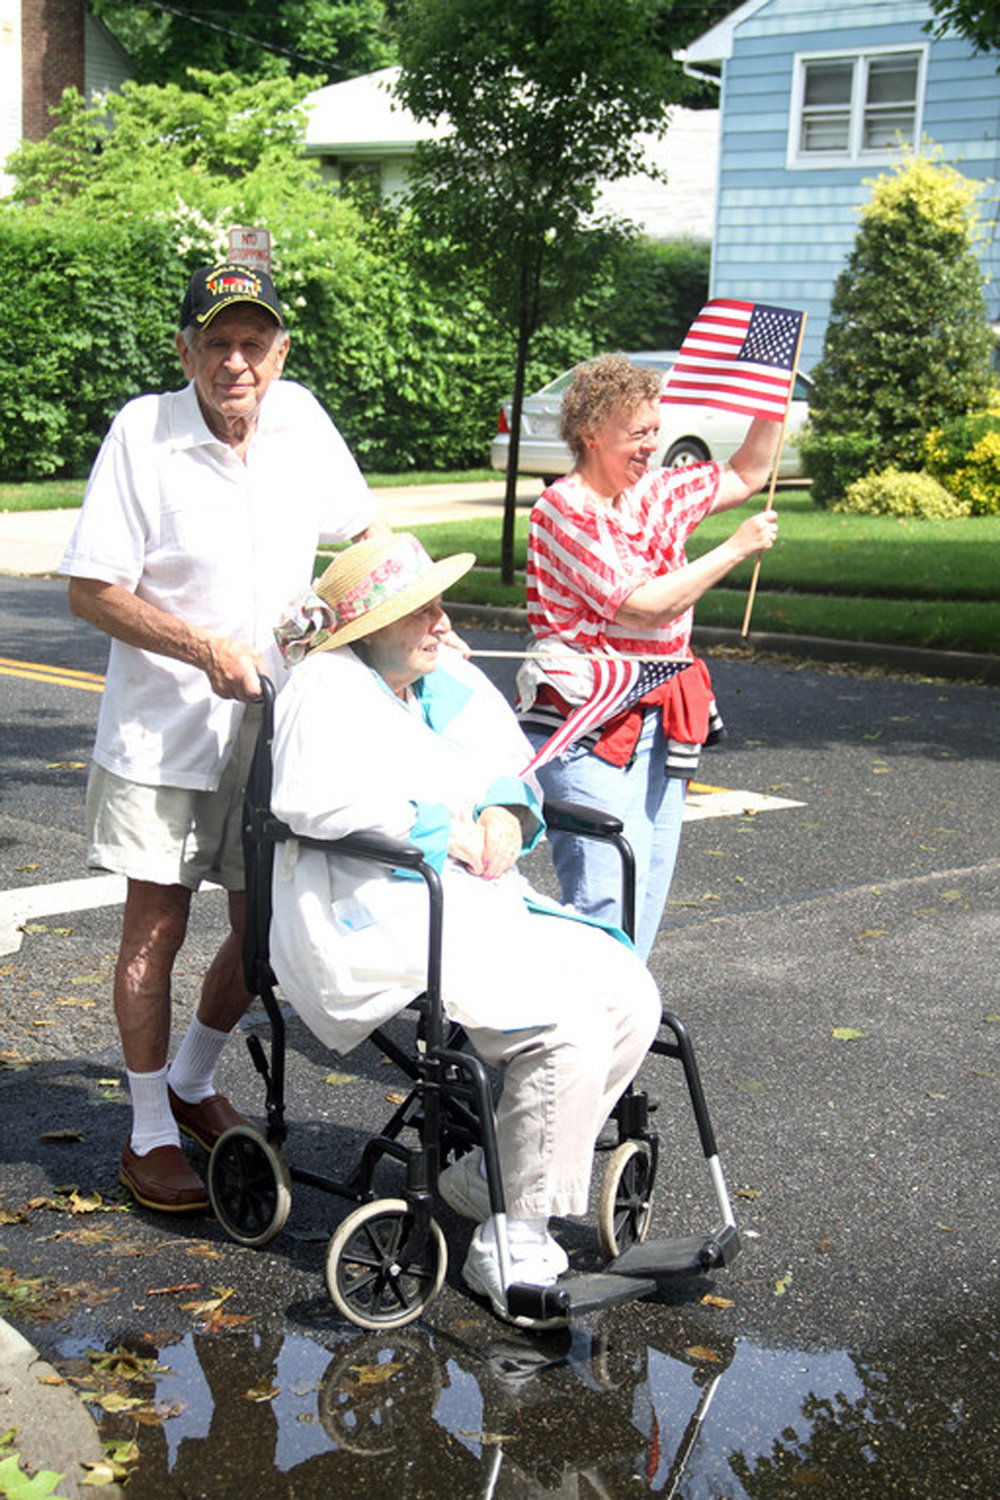 Eddie Rosenblum was a regular in West Hempstead's annual Memorial Day parade. Above, Eddie with his wife, Shirley, and daughter, Janice, at the parade in 2011.